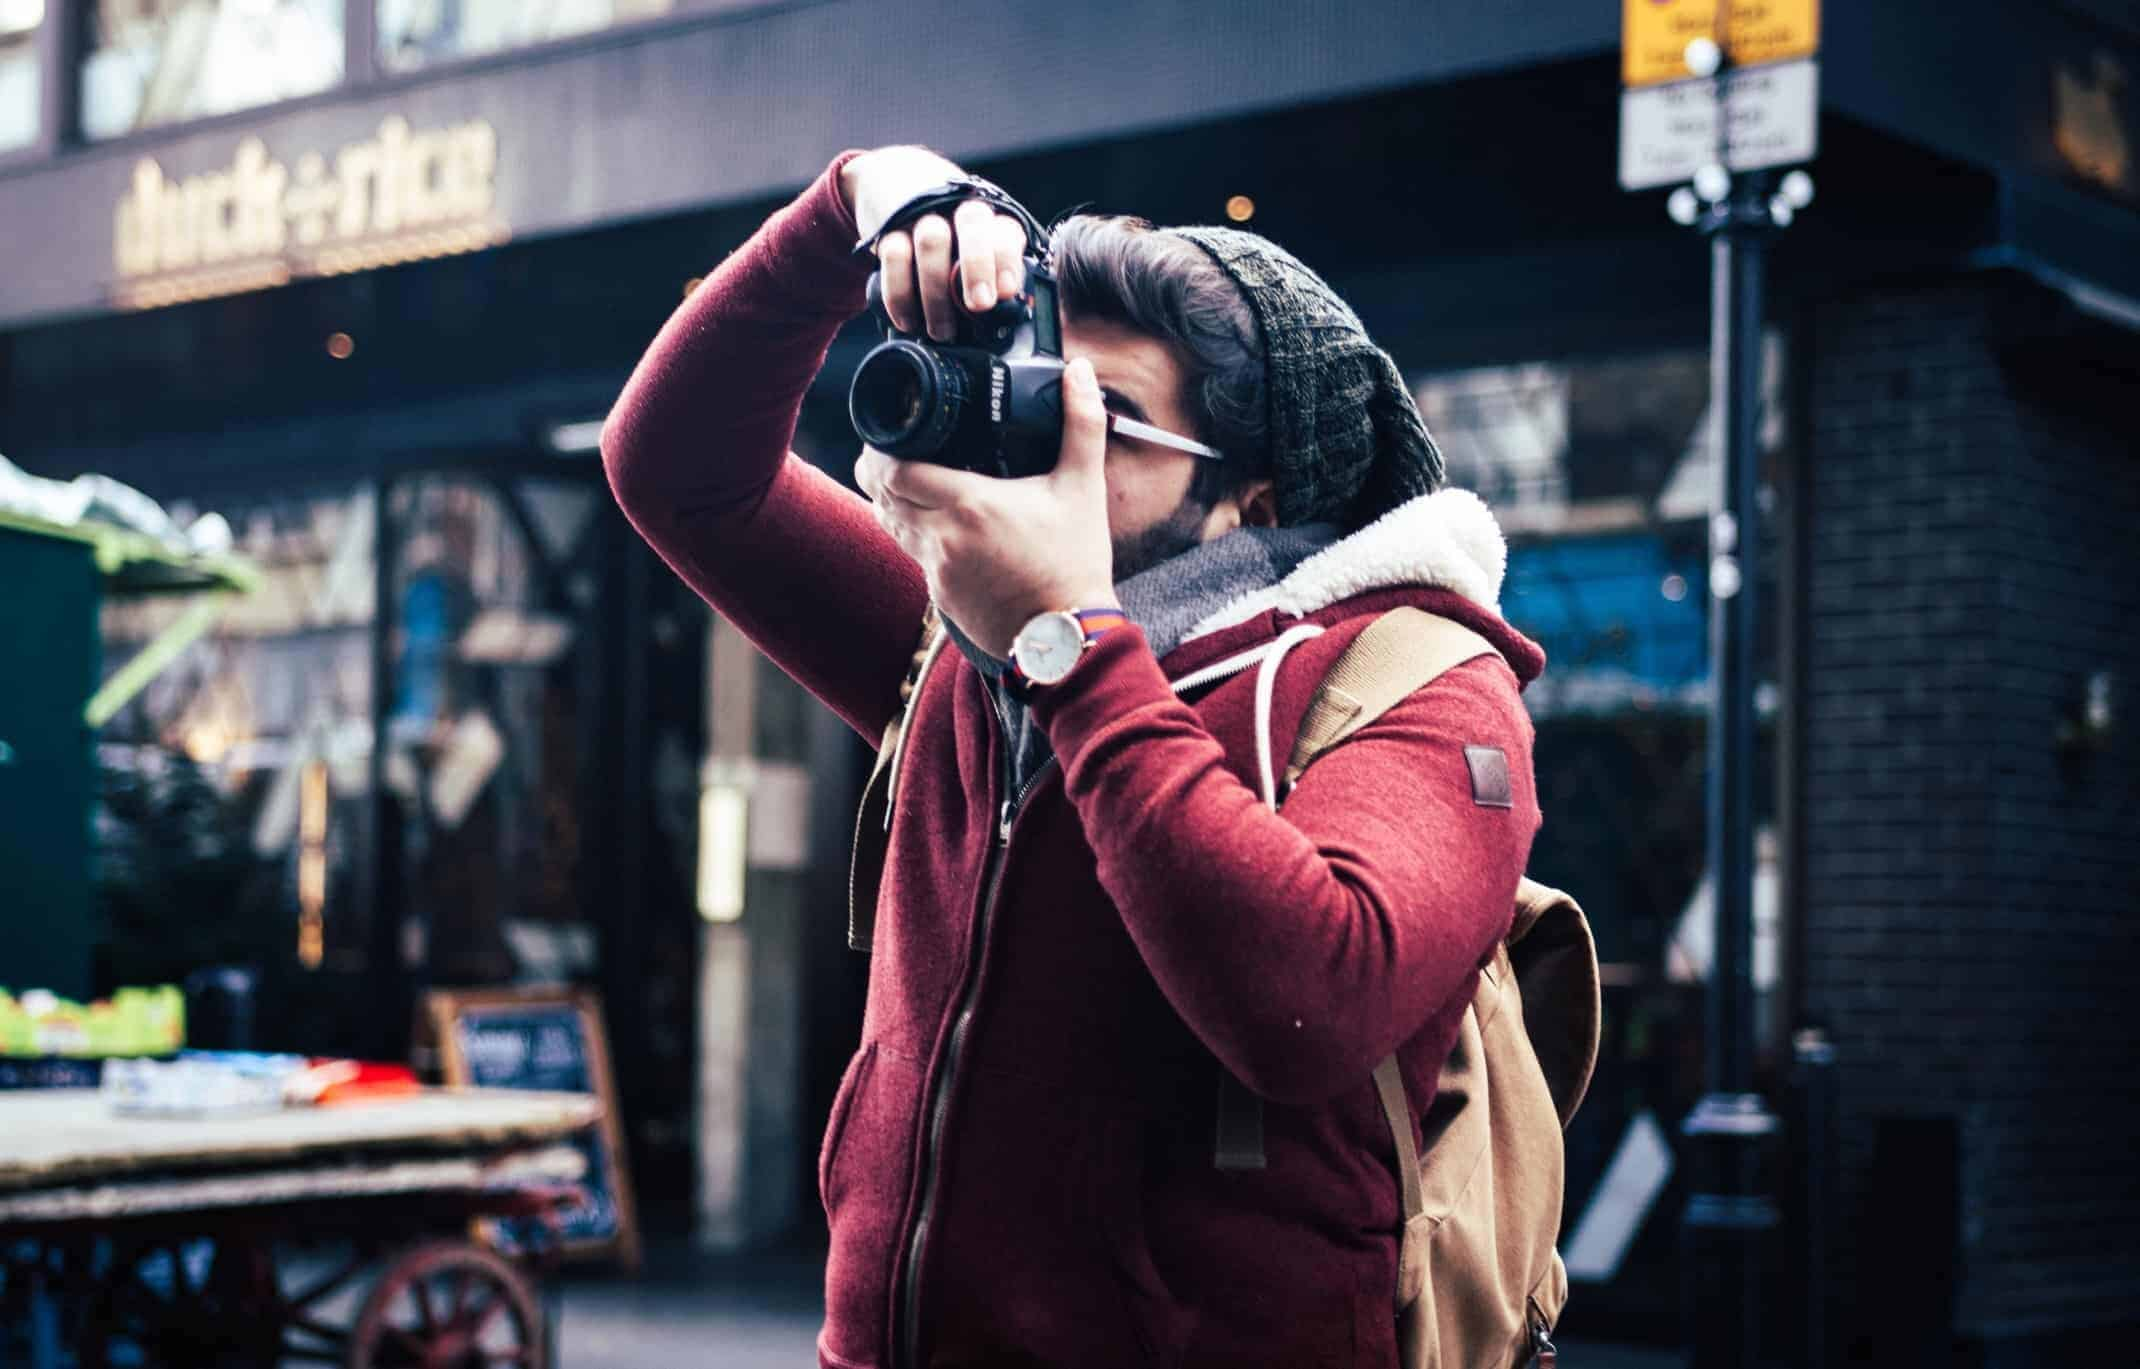 The Best Street Photography Cameras in 2019 (Top 8 Picks)